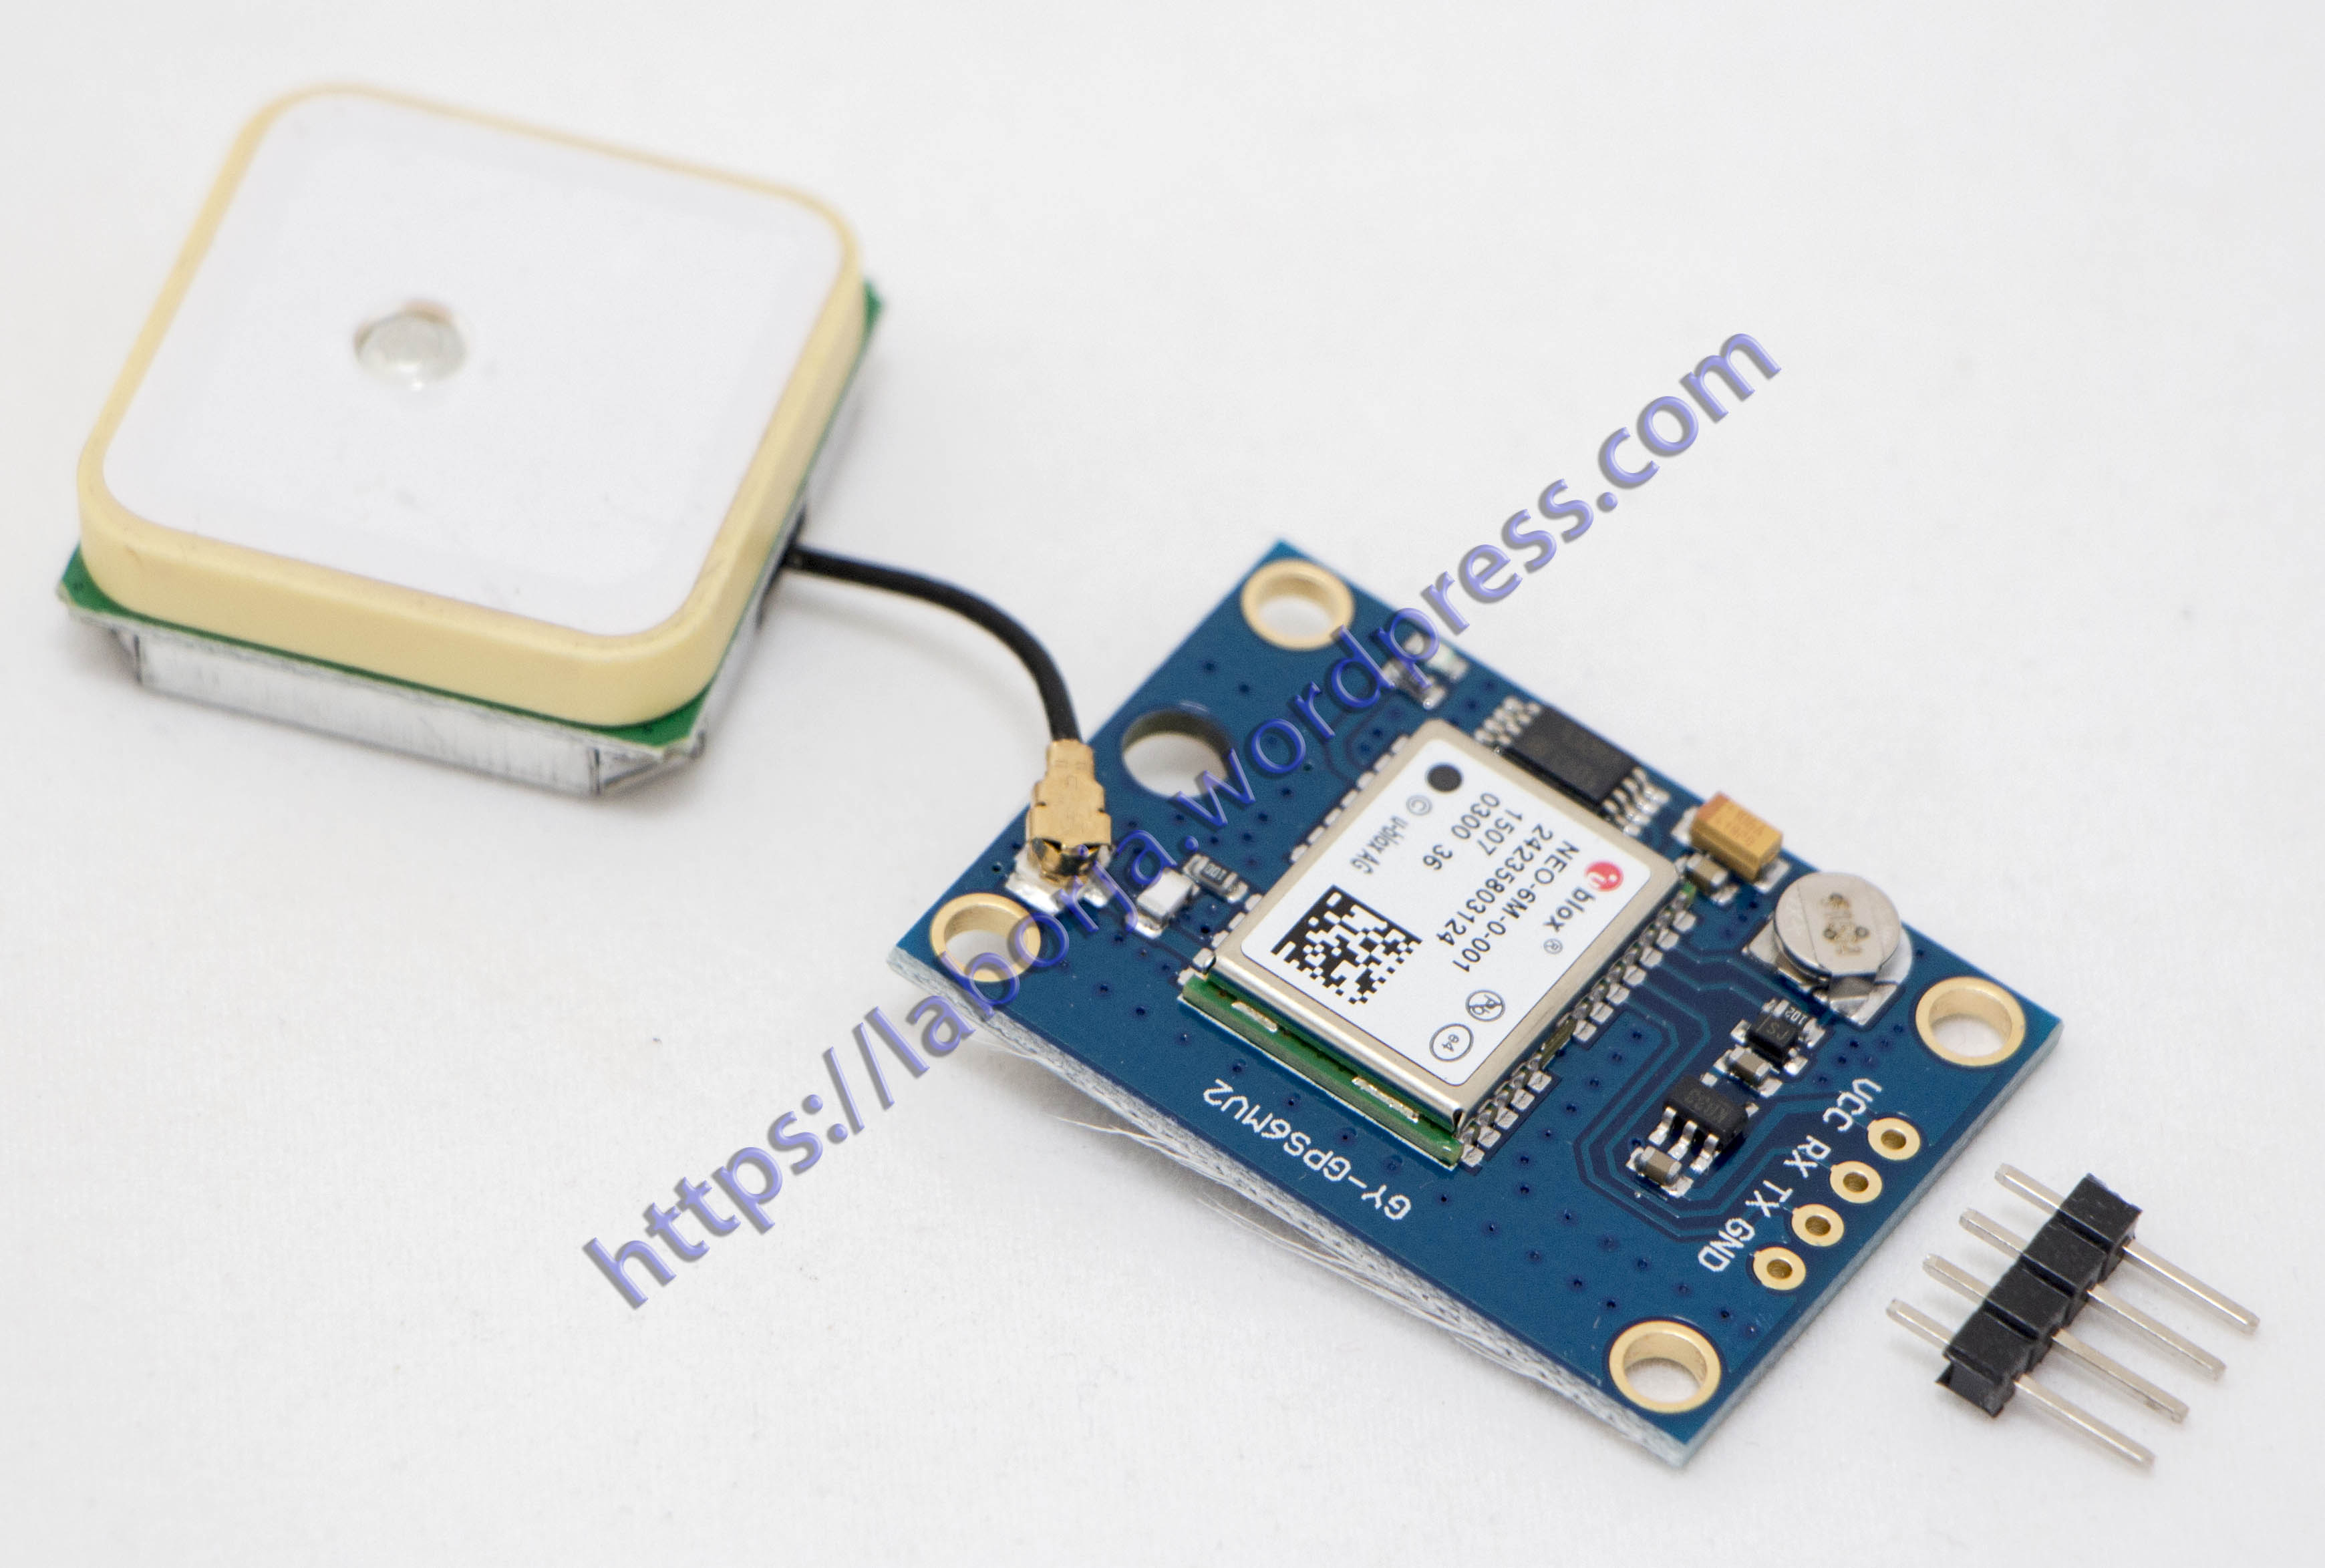 Gy Neo6mv2 Gps Module Borja Home Page Balancer Circuit Smd For Liion Lipo Cells Test Youtube